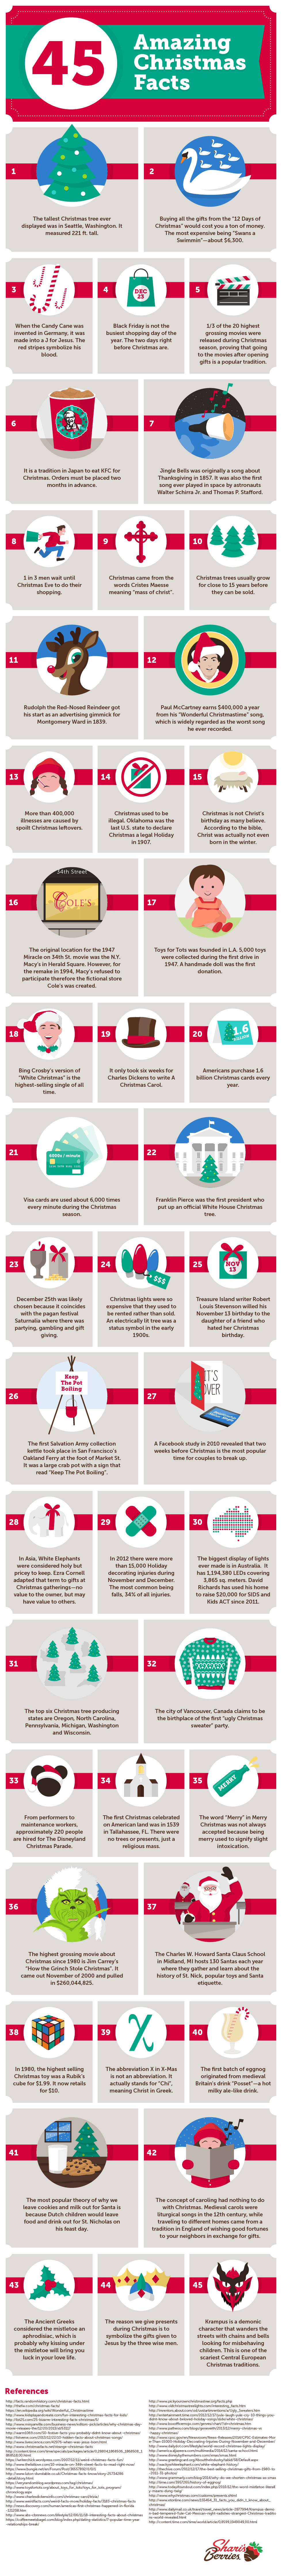 45 Amazing Christmas Facts